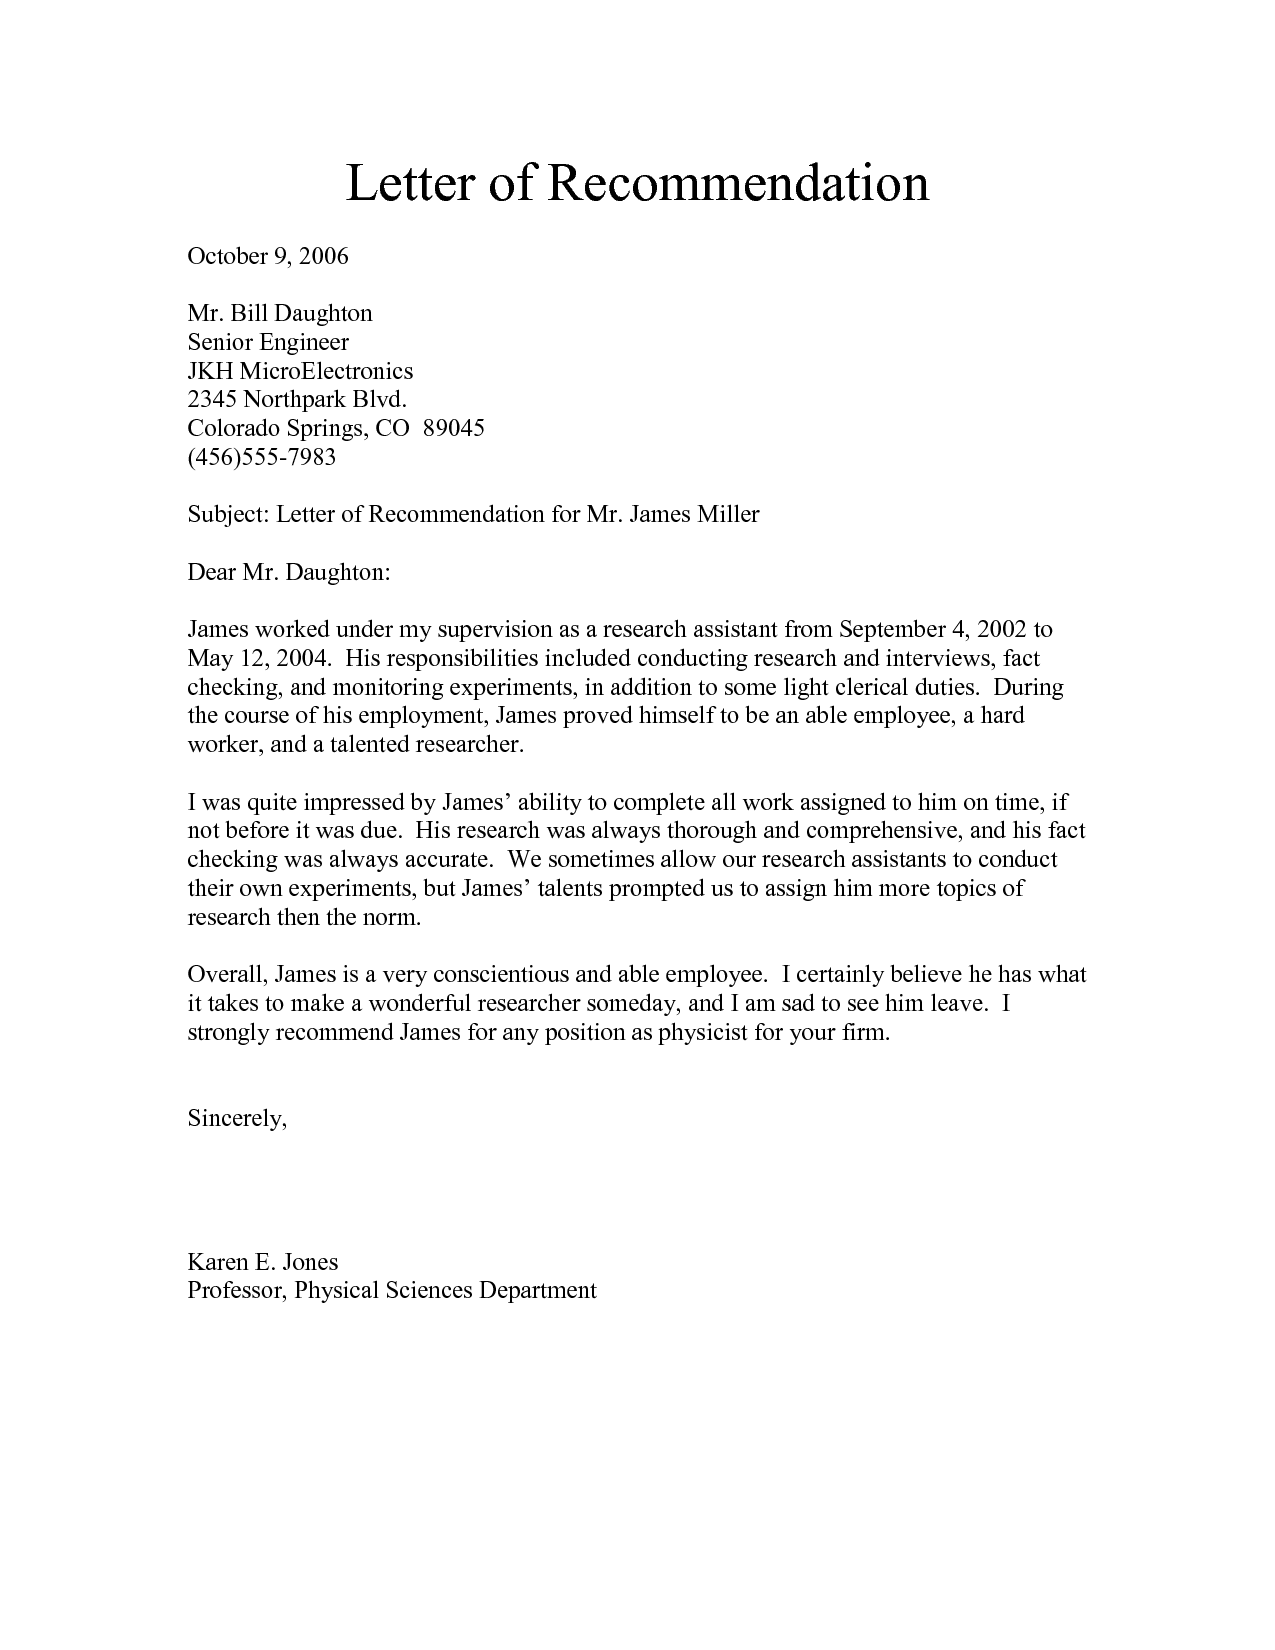 Recommendation Letter, Letter Of Recommendation, Reference Letter, Letter  Of Reference, Reference Letter  Free Sample Professional Letter Of Recommendation